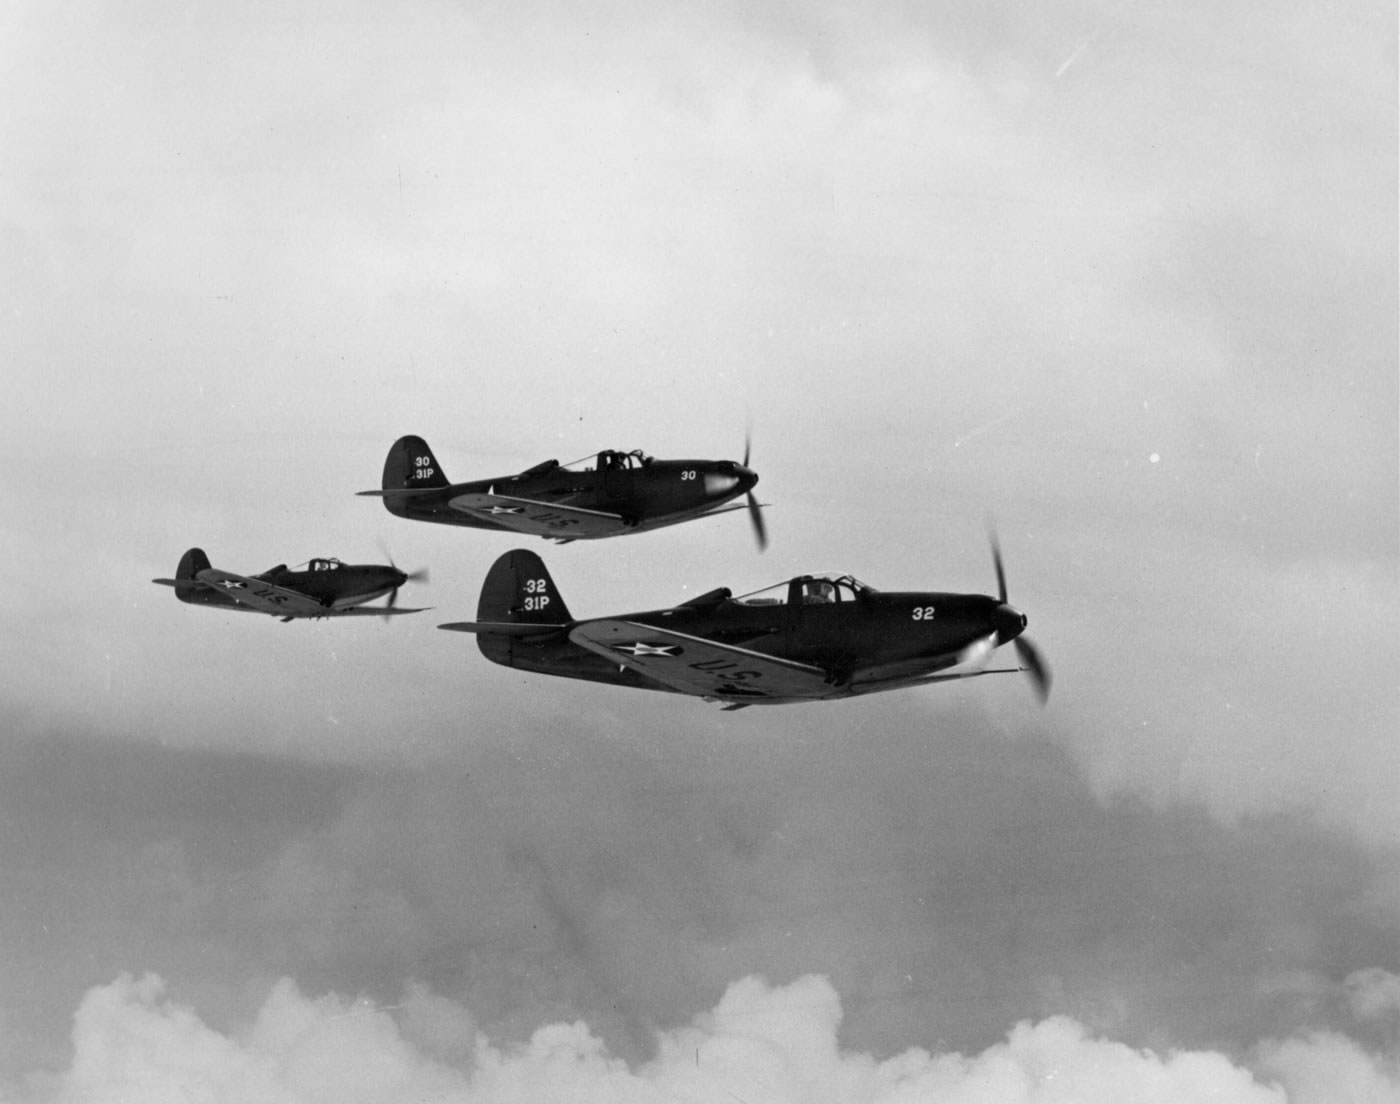 P-39 Airacobras in flight  P 39